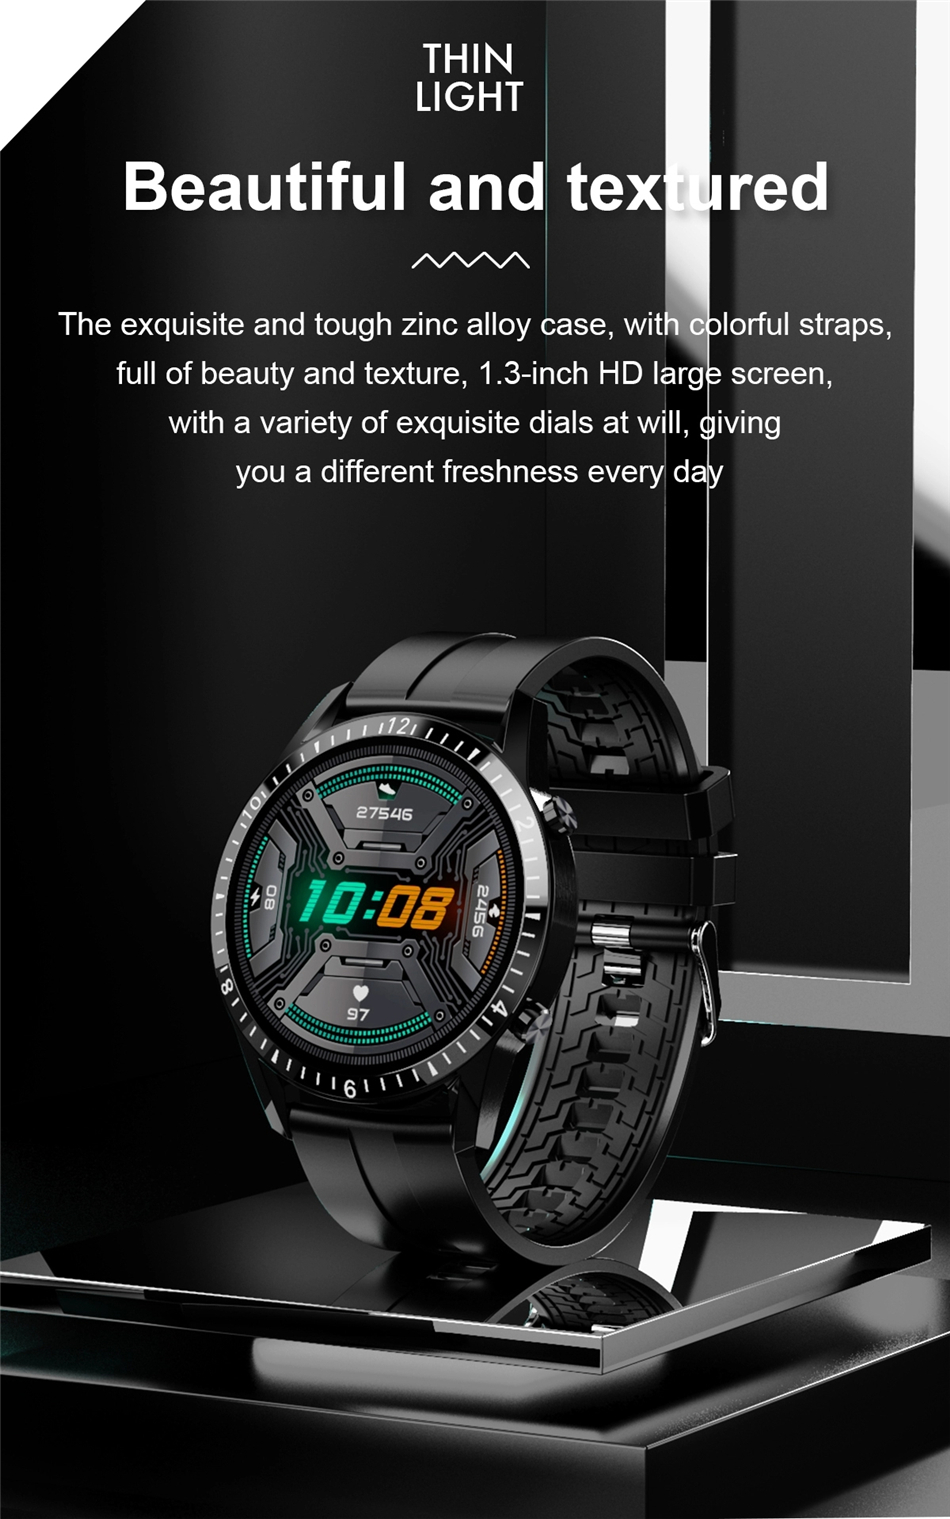 Hafccdbca4fac4e1484ab44fb6838e9f72 2021 Smart Watch Phone Full Touch Screen Sport Fitness Watch IP68 Waterproof Bluetooth Connection For Android ios smartwatch Men